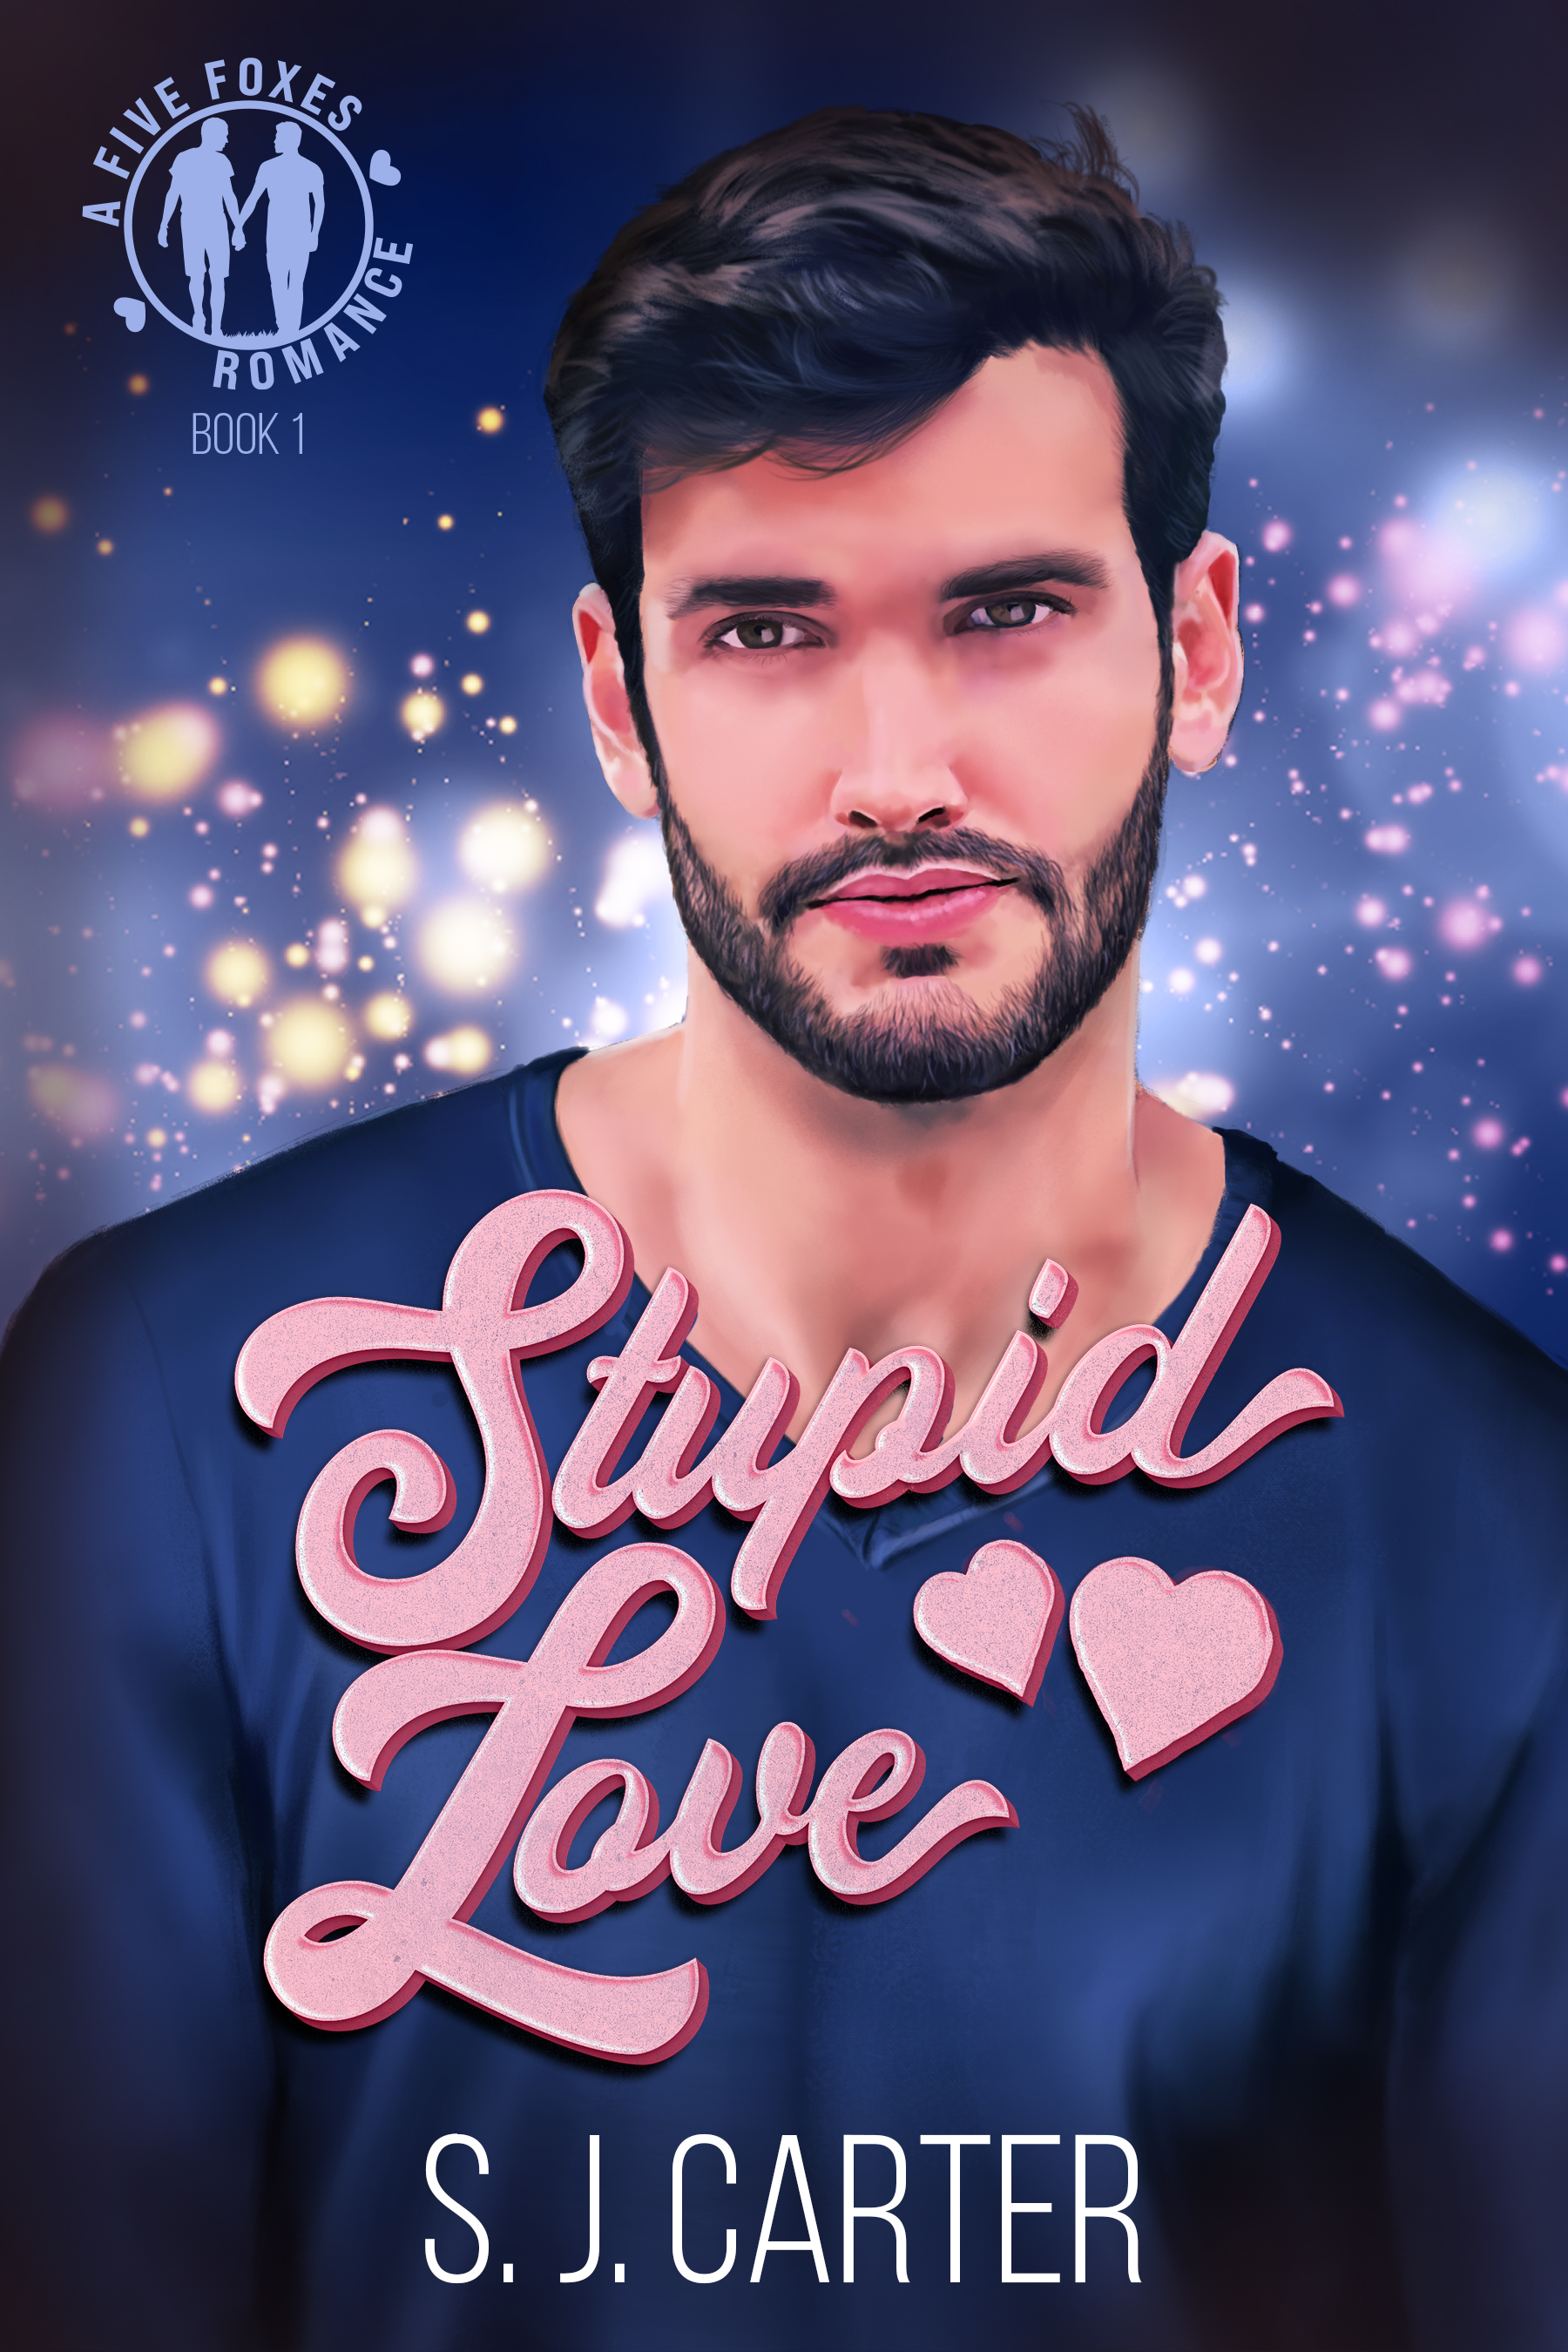 Stupid Love - Ebook Cover - Amazon